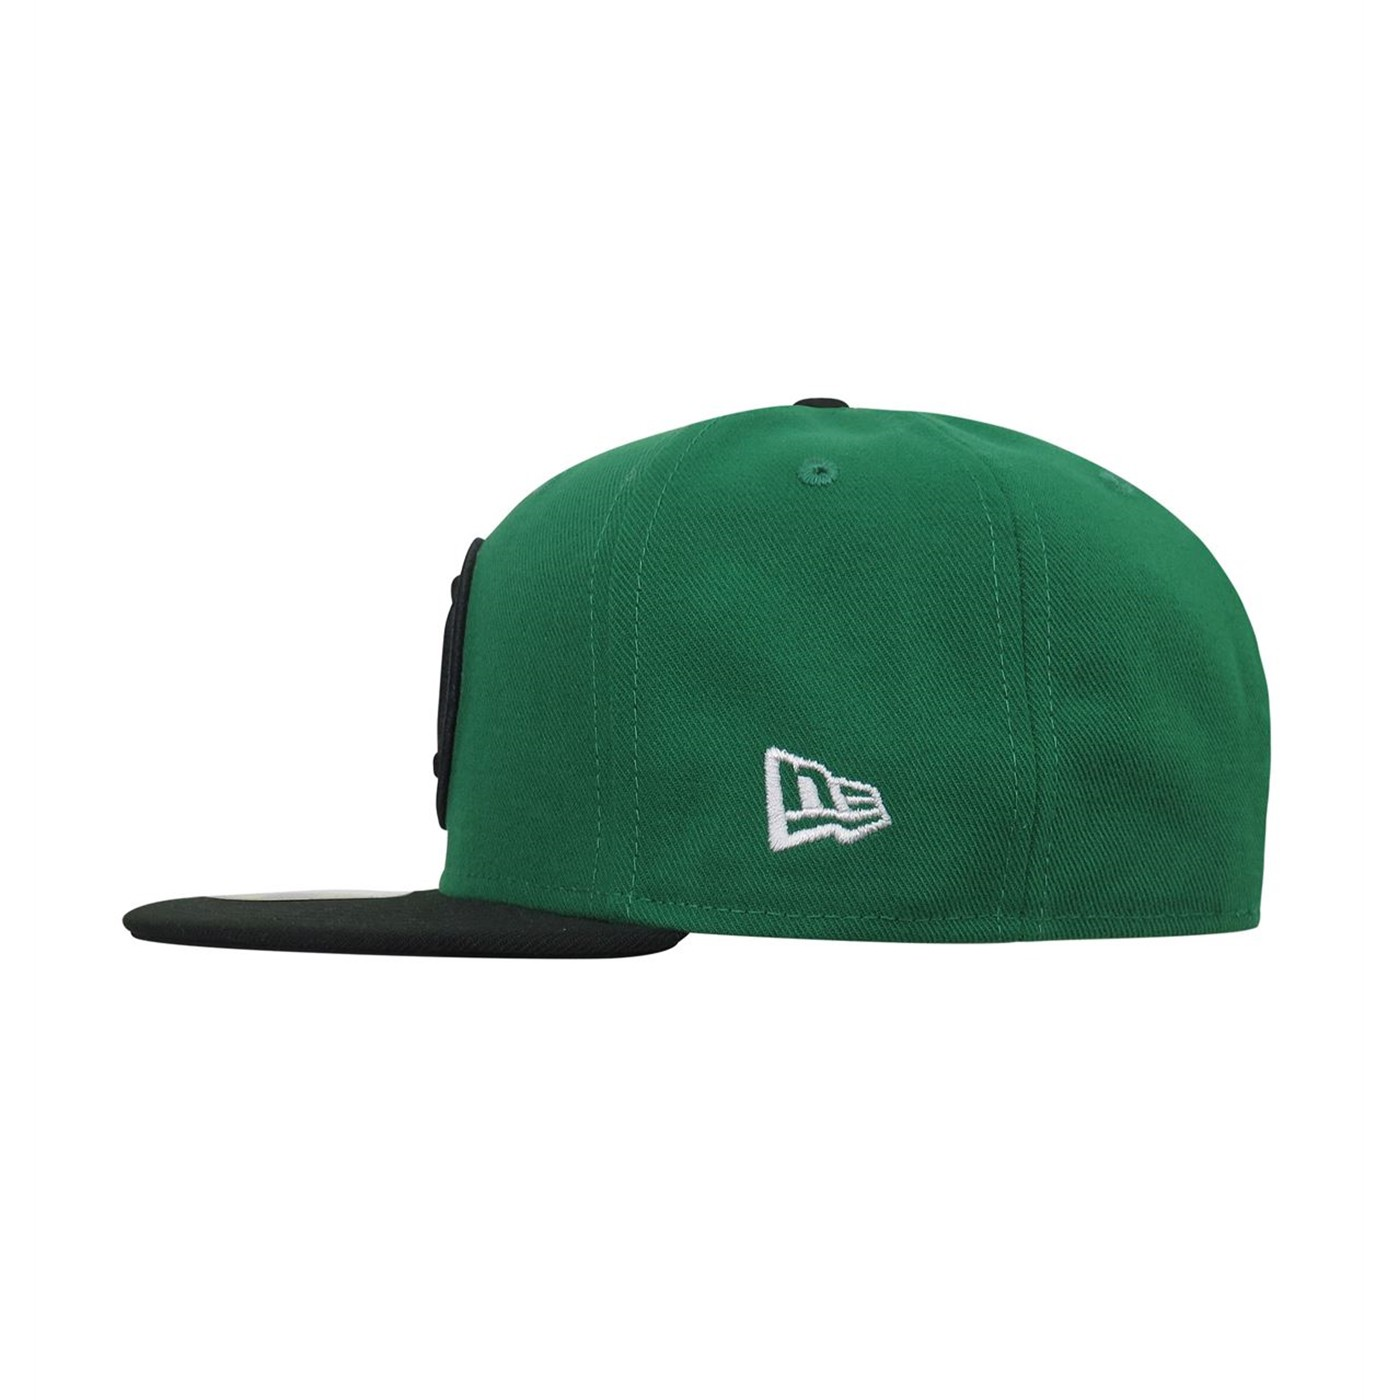 Green Lantern Hal Jordan 59Fifty Fitted Hat